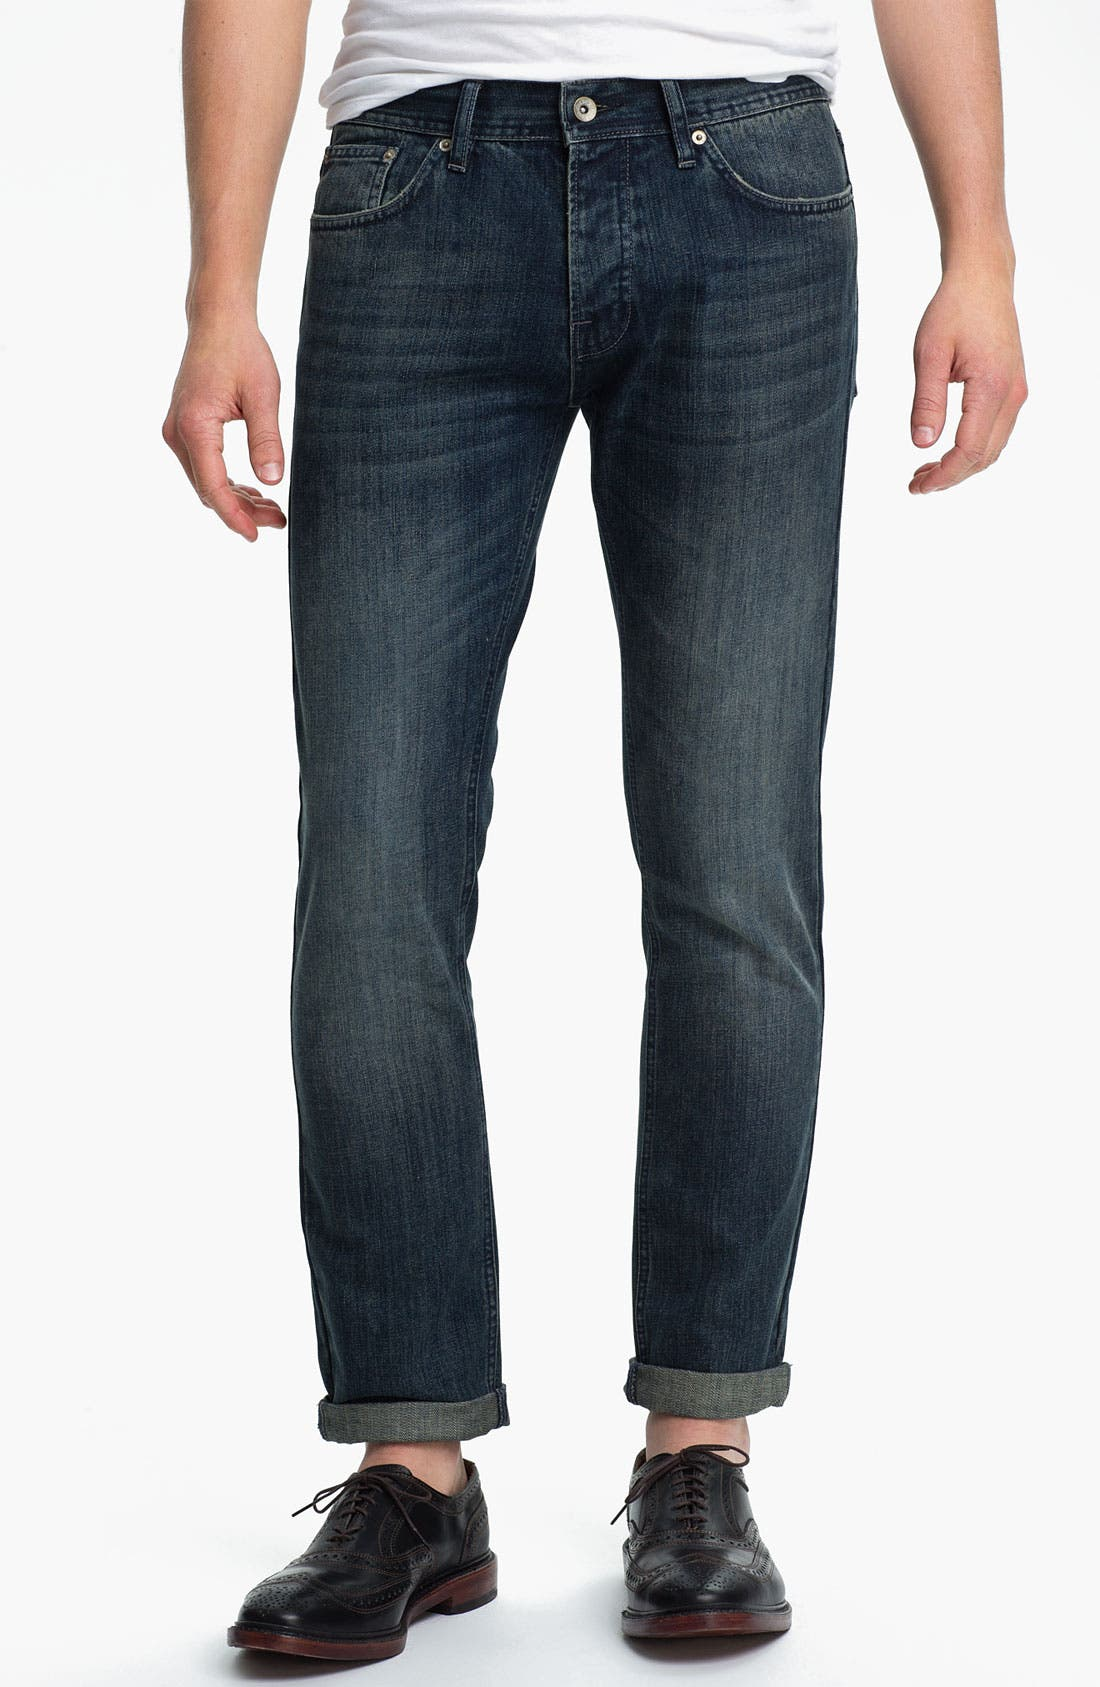 Alternate Image 1 Selected - Topman Skinny Fit Jeans (Dark Blue)